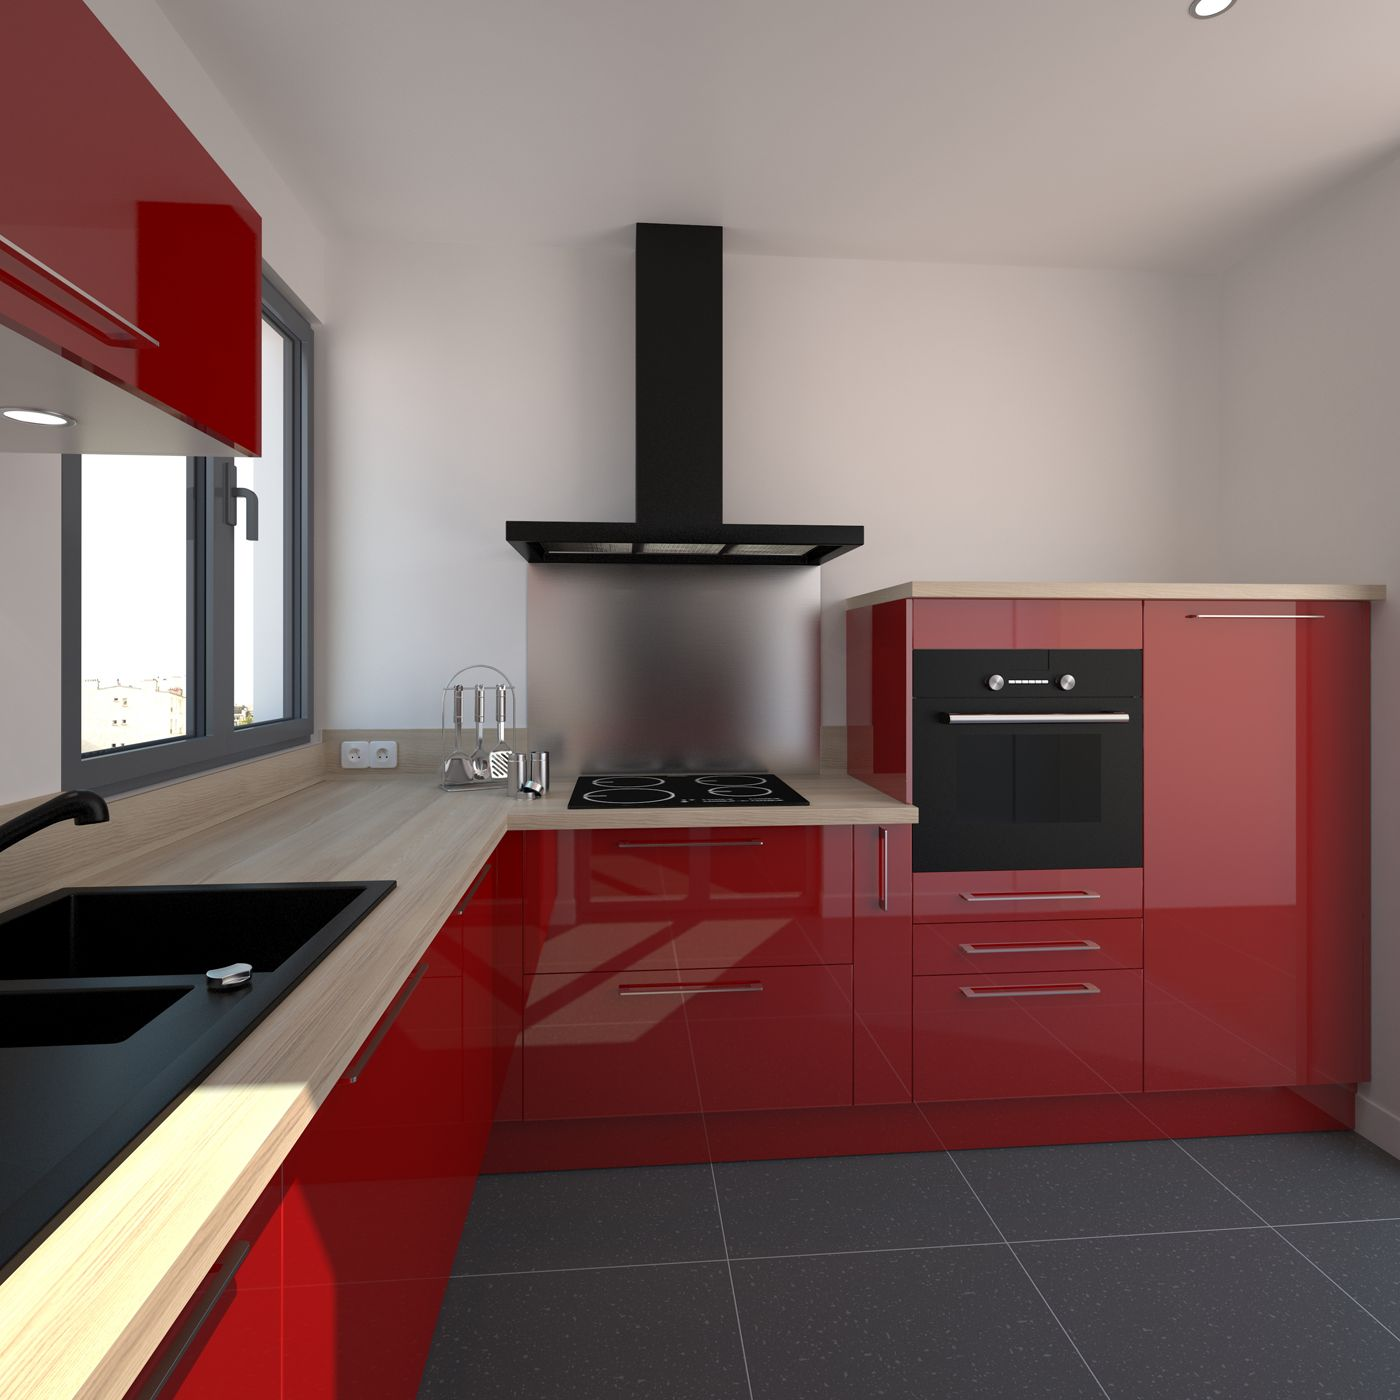 cuisine rouge moderne fa ade stecia rouge brillant kitchens and house. Black Bedroom Furniture Sets. Home Design Ideas